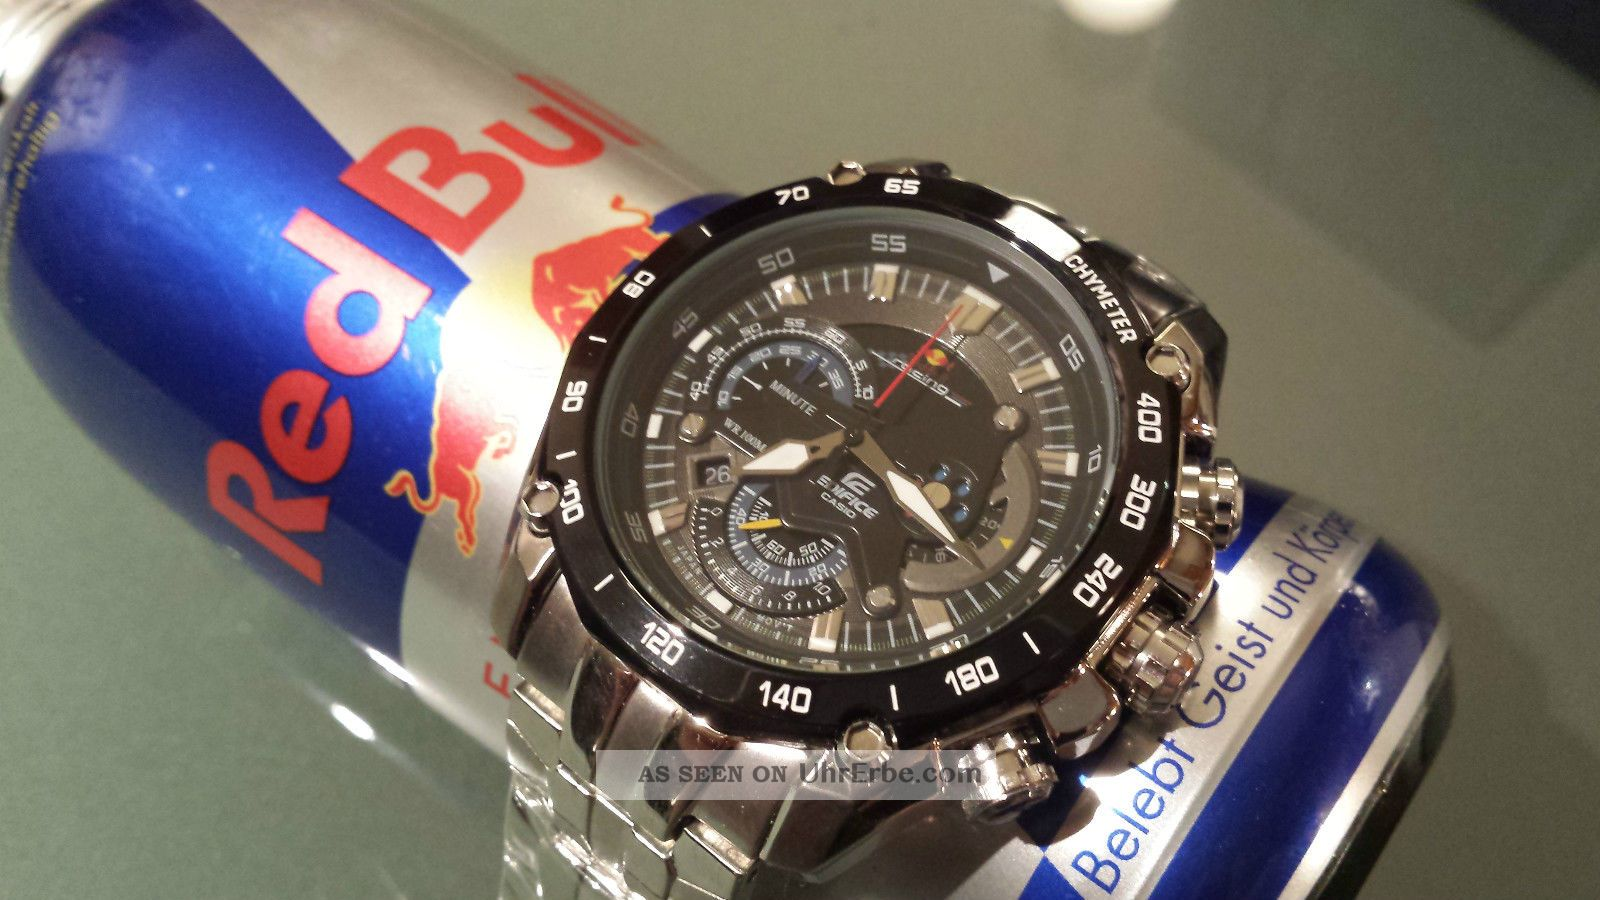 Casio Edifice Ef - 550rbsp - 1av Red Bull Racing Limited Edition Armbanduhren Bild